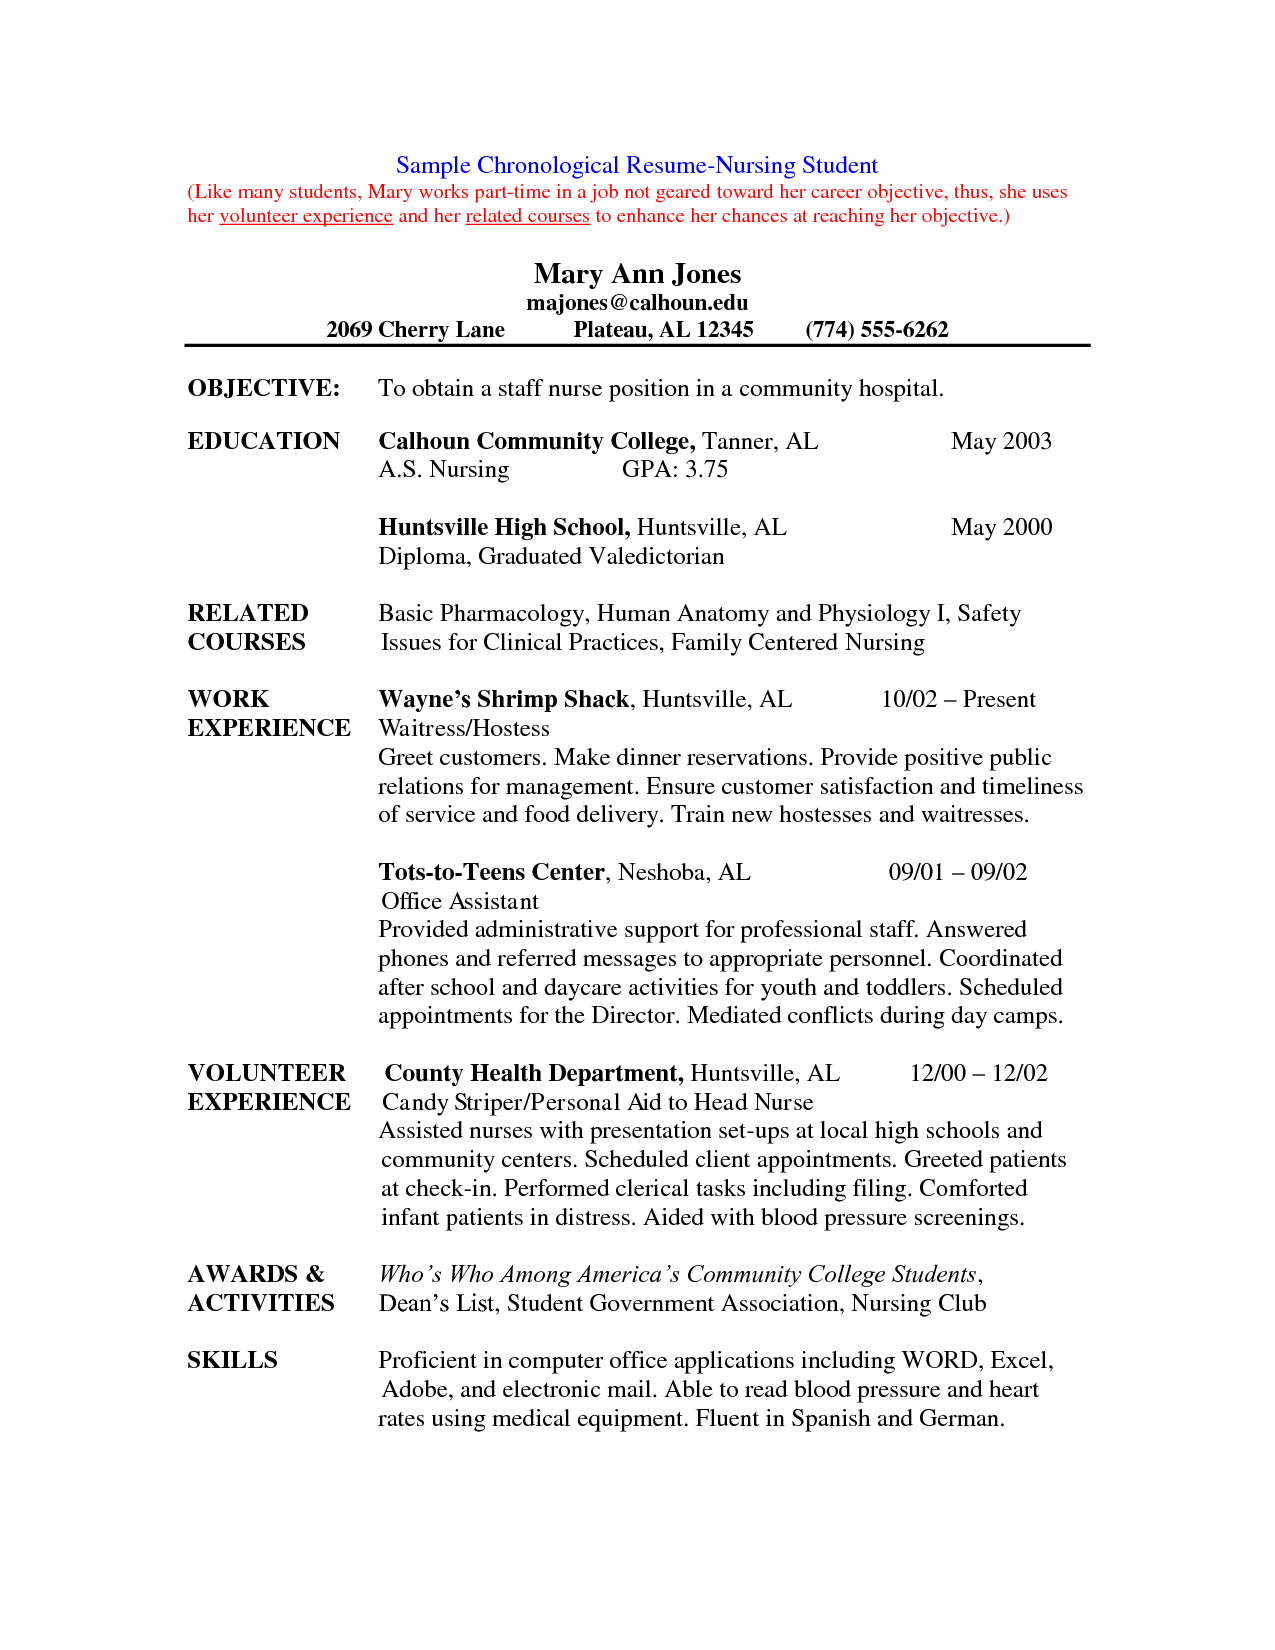 example student nurse resume sample nursing school cover letters for nursing job application pdf nursing samplenursing get resume nursingrn